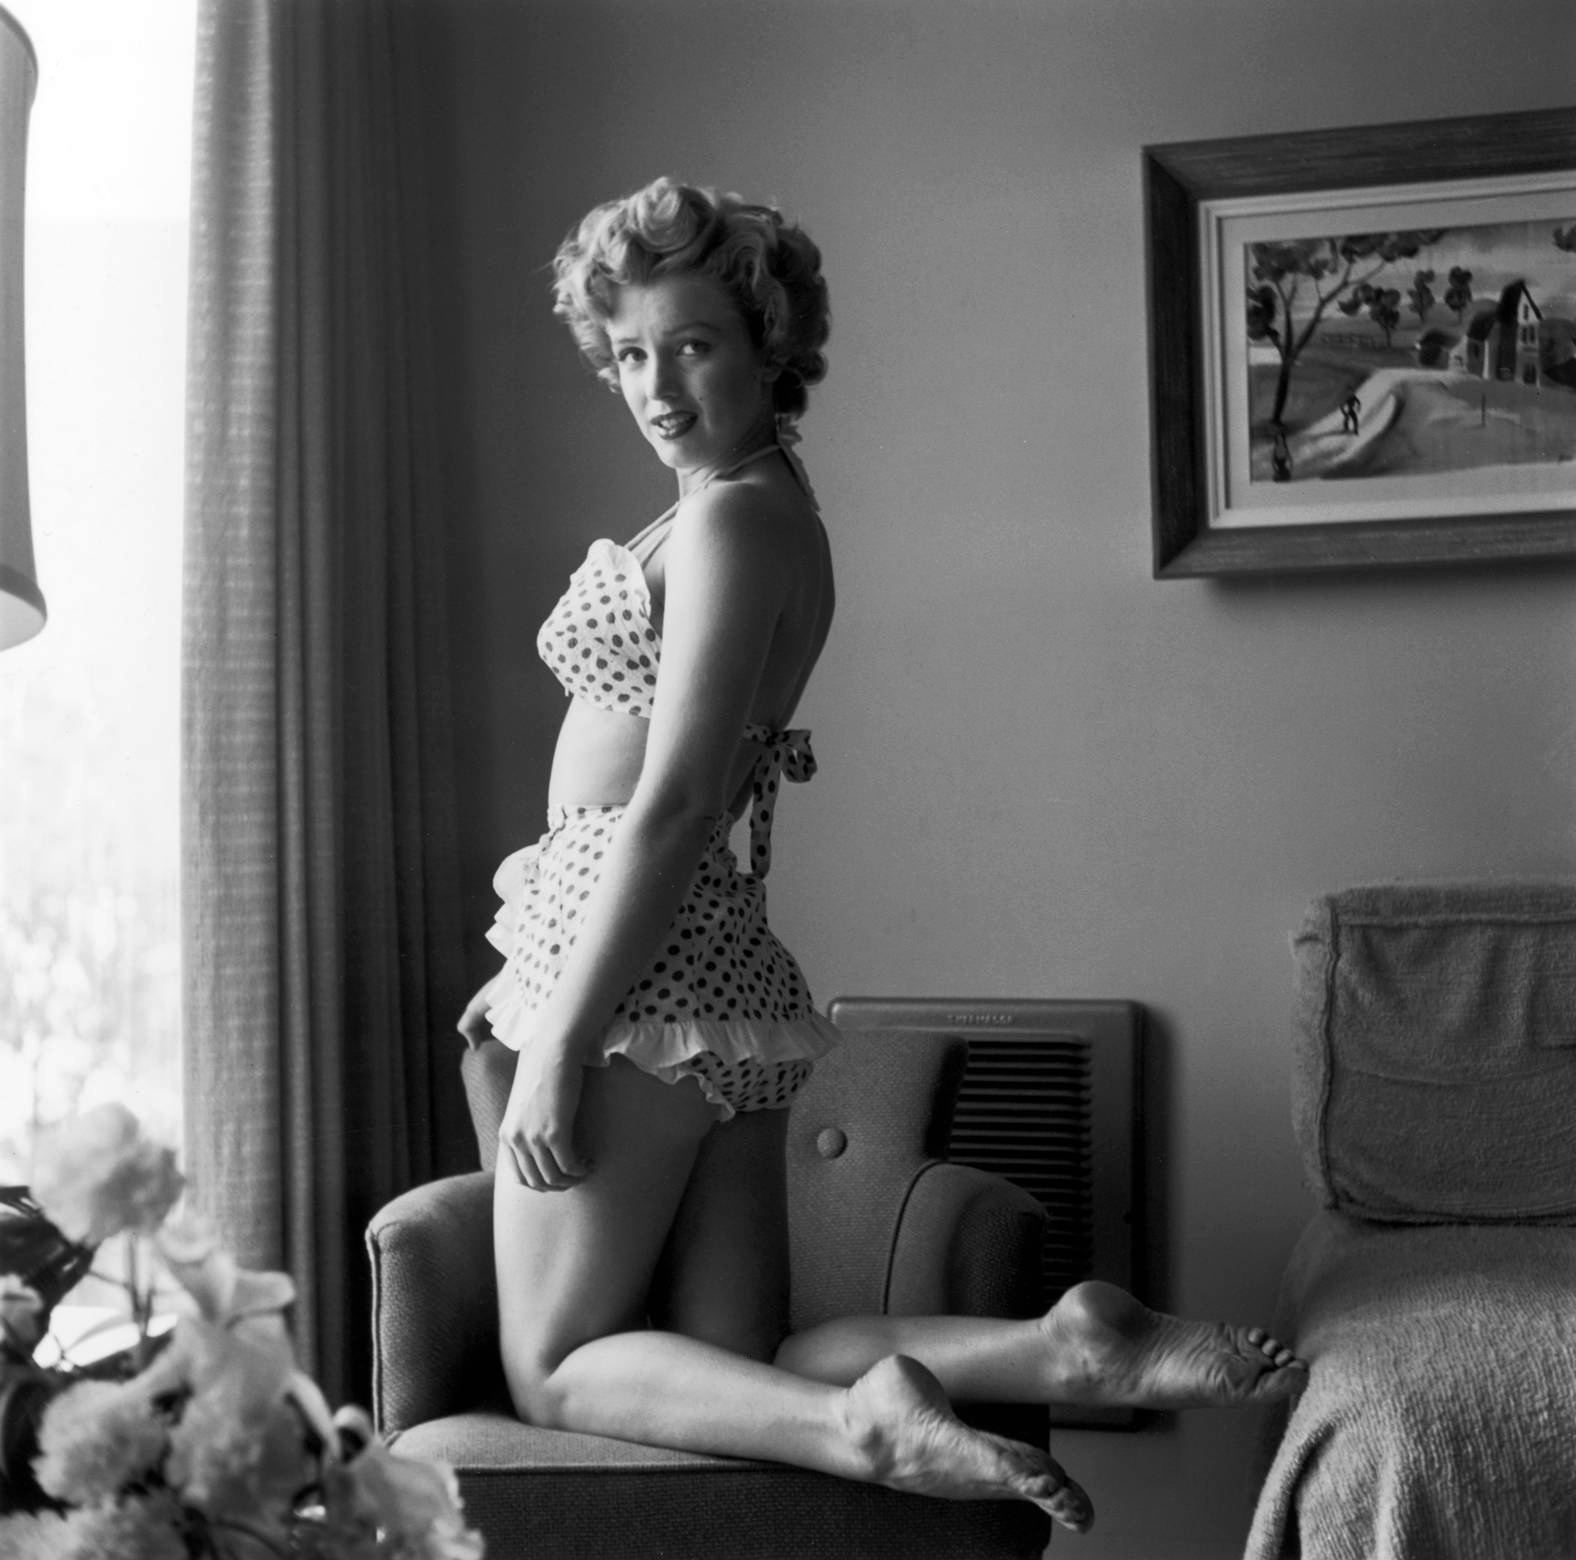 Marilyn monroe young naked brilliant idea